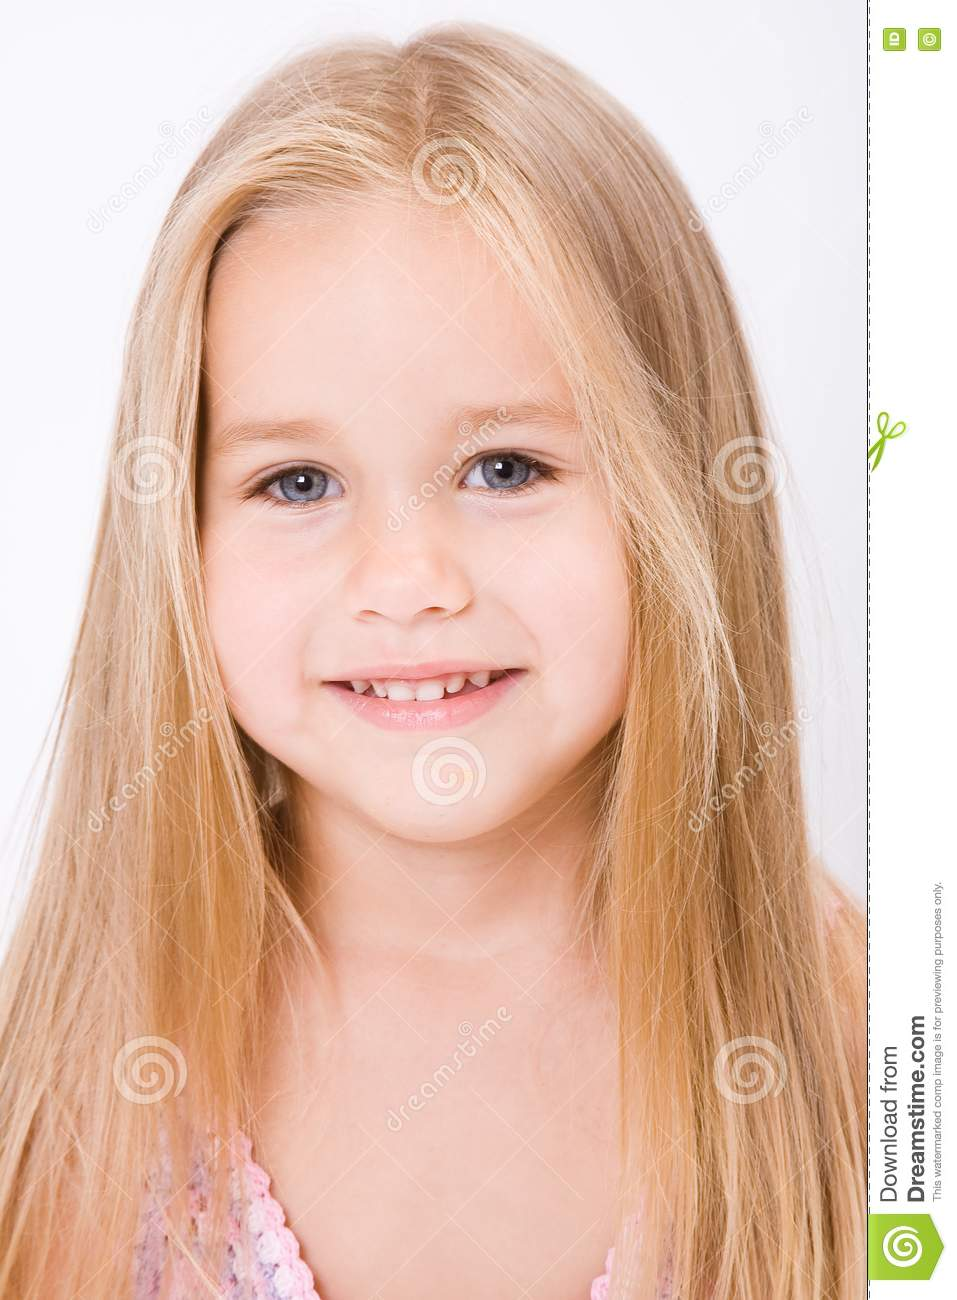 Beautiful Little Girl Stock Photo Image Of Pretty, Funny - 10188842-4446